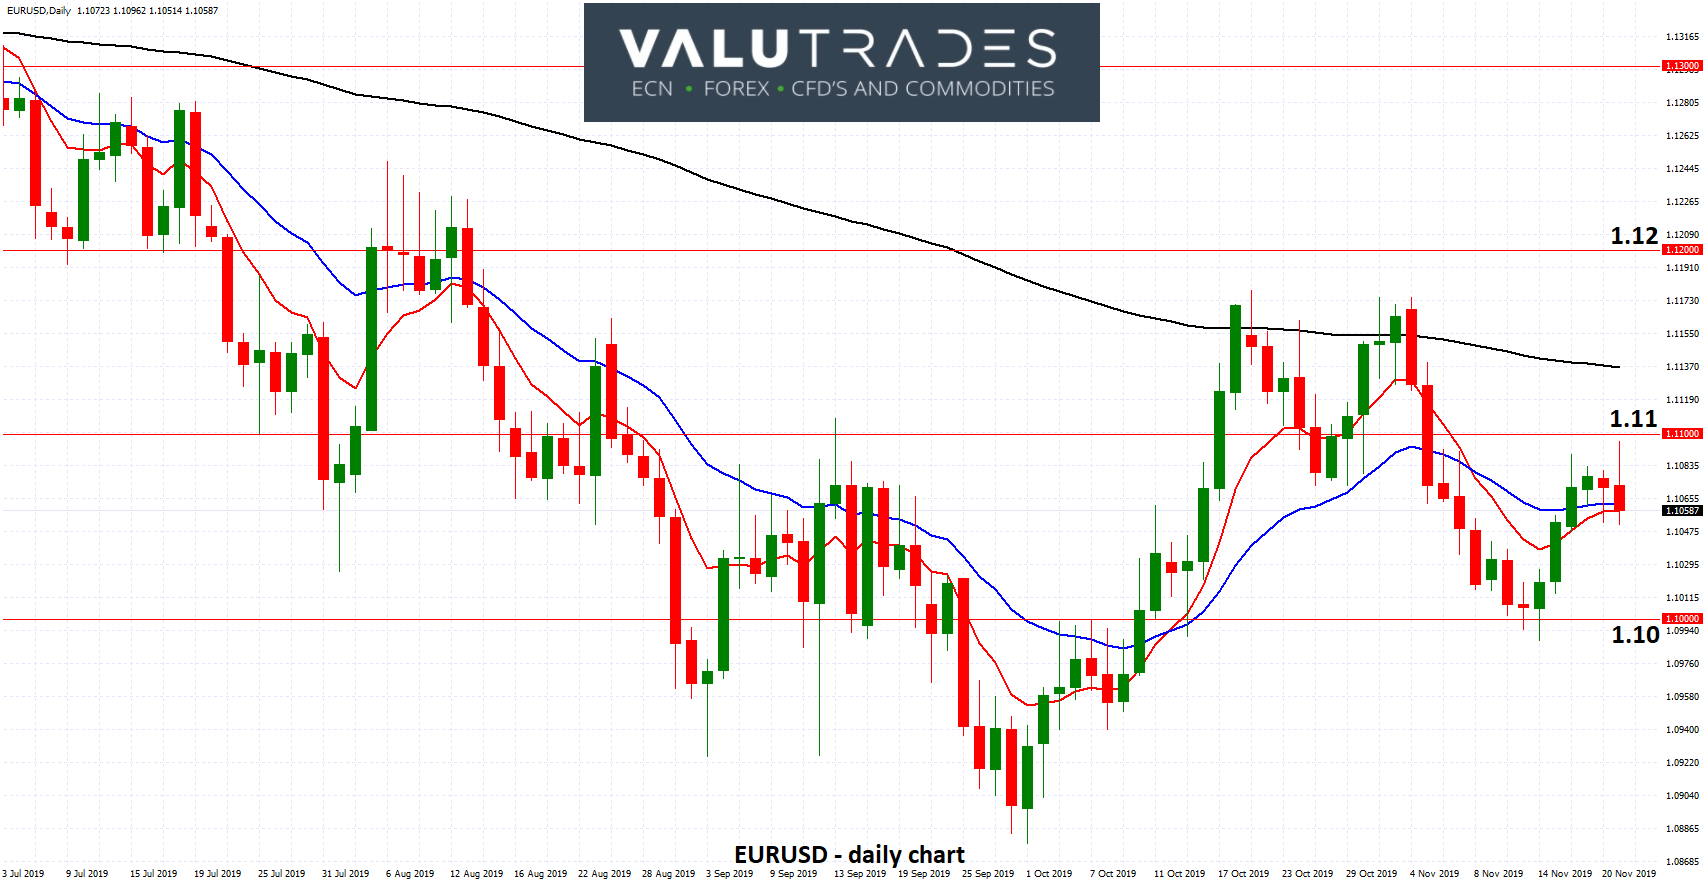 EURUSD - Resistance at 1.11 Stands Tall after ECB Minutes